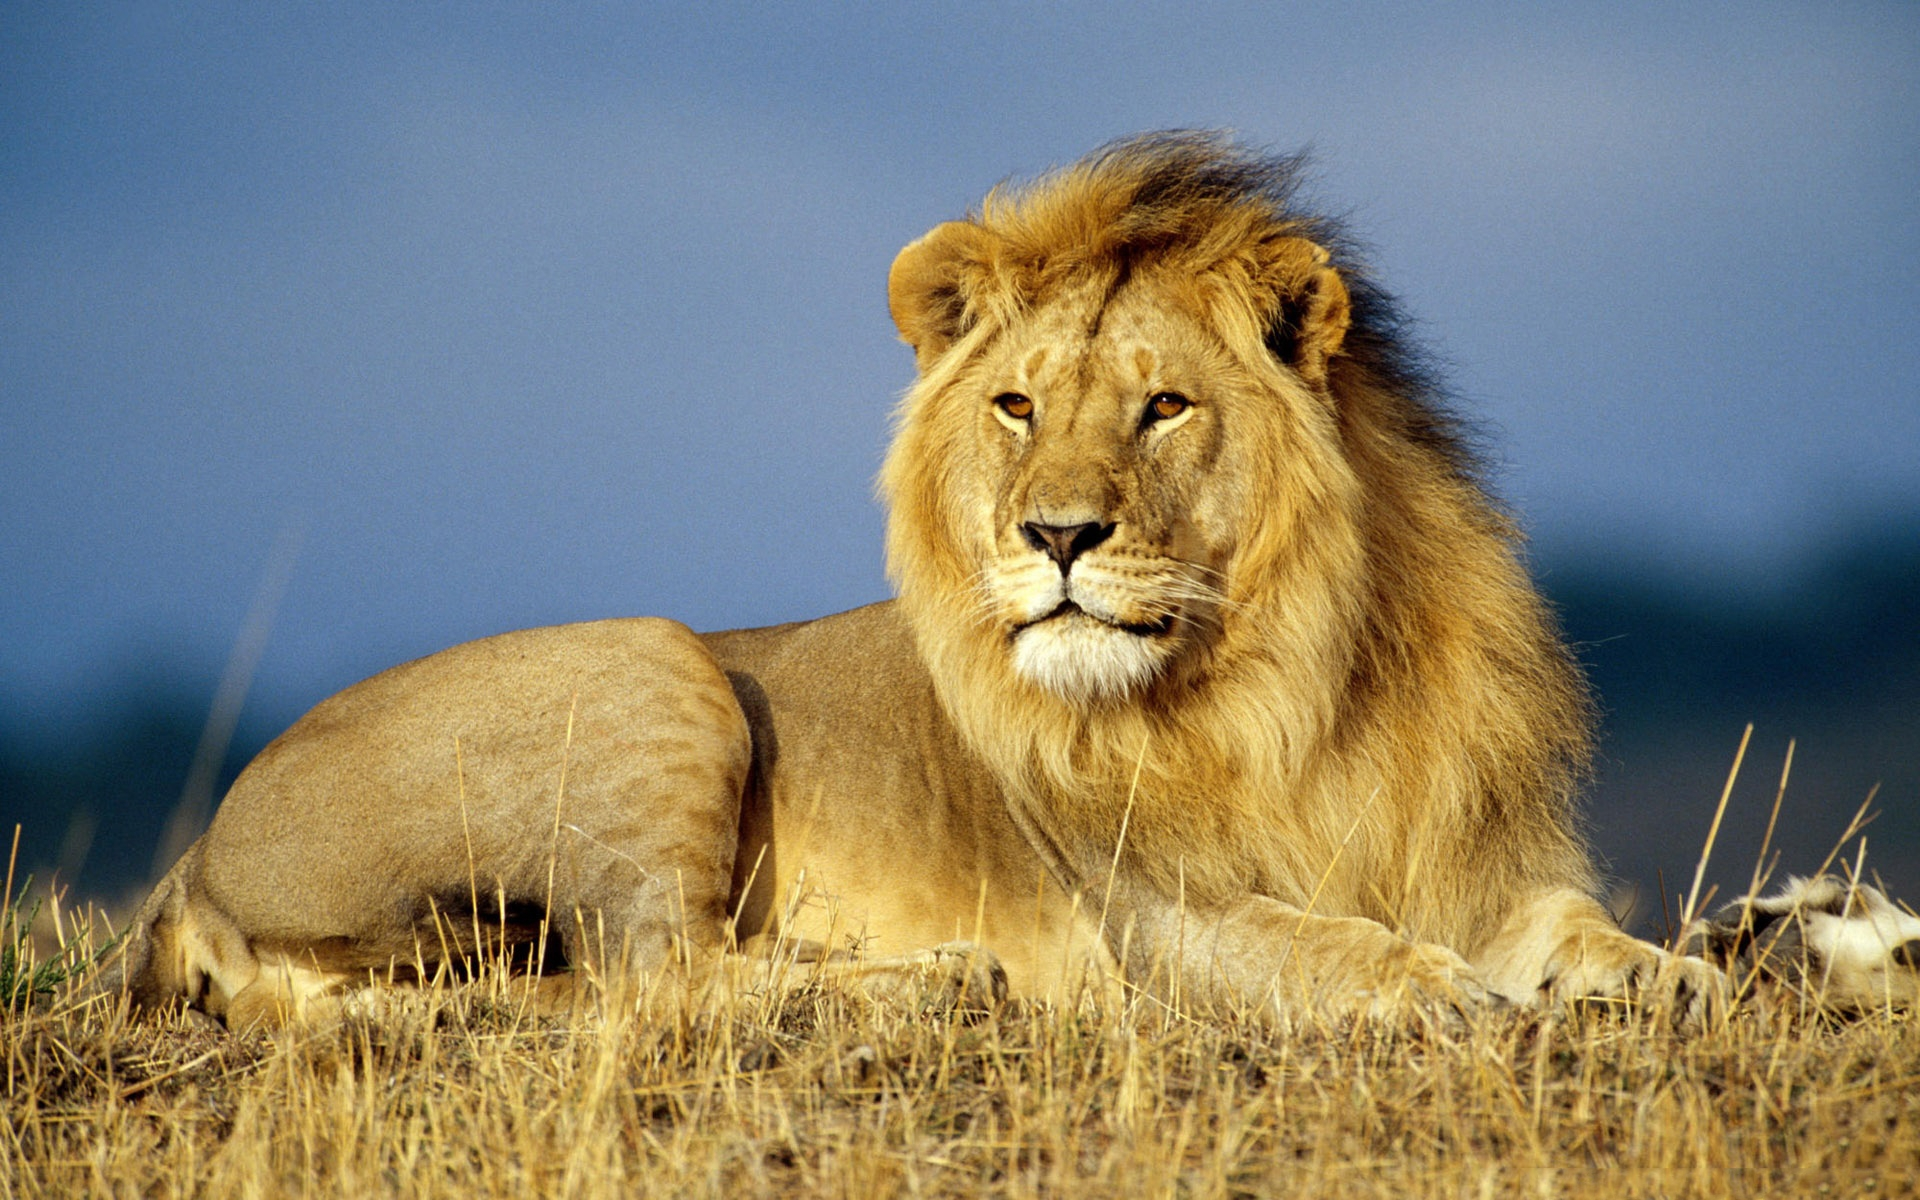 34259 download wallpaper Animals, Lions screensavers and pictures for free